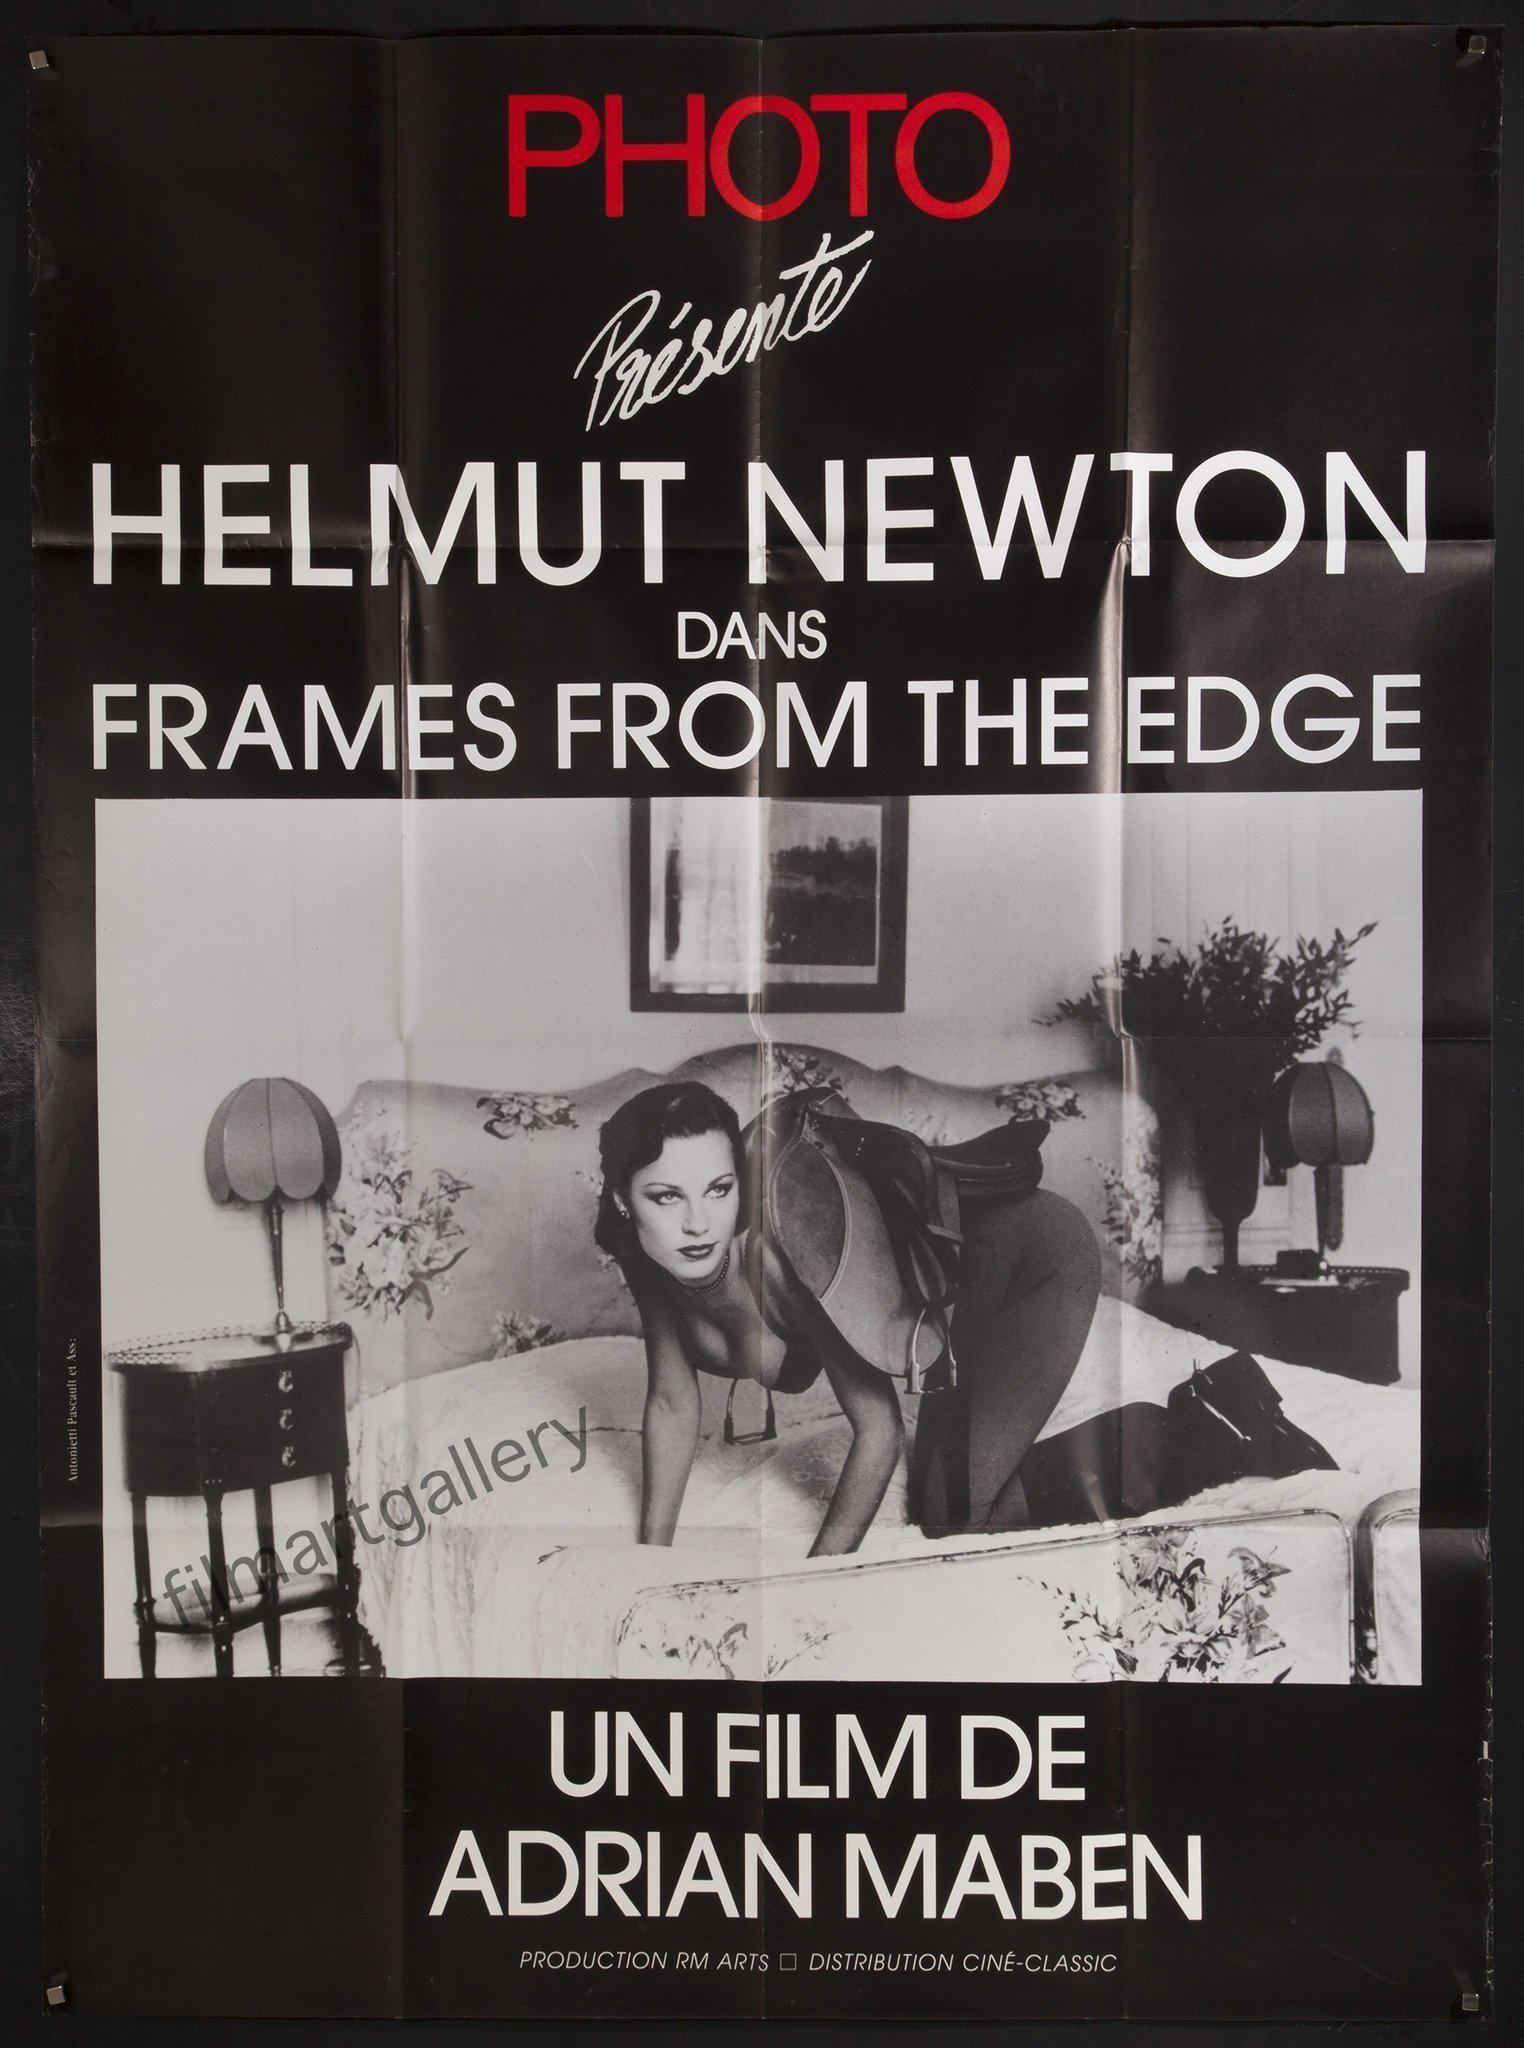 Helmut Newton Frames From The Edge Vintage Movie Poster | French 1 ...